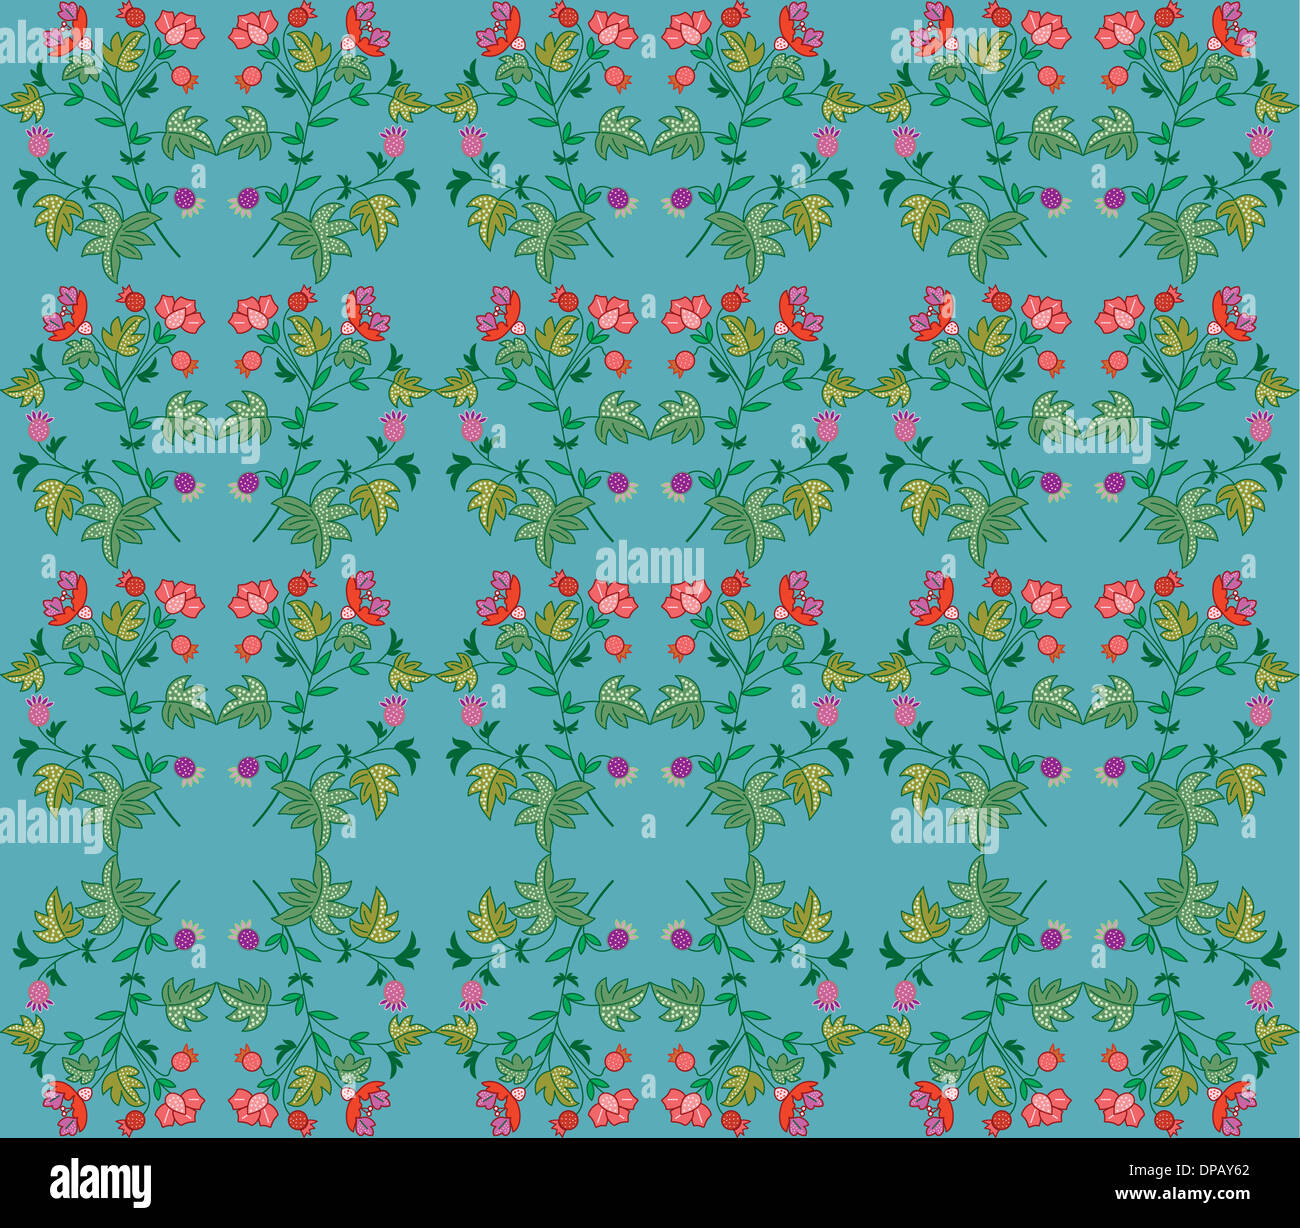 Flower pattern on a blue background - Stock Image